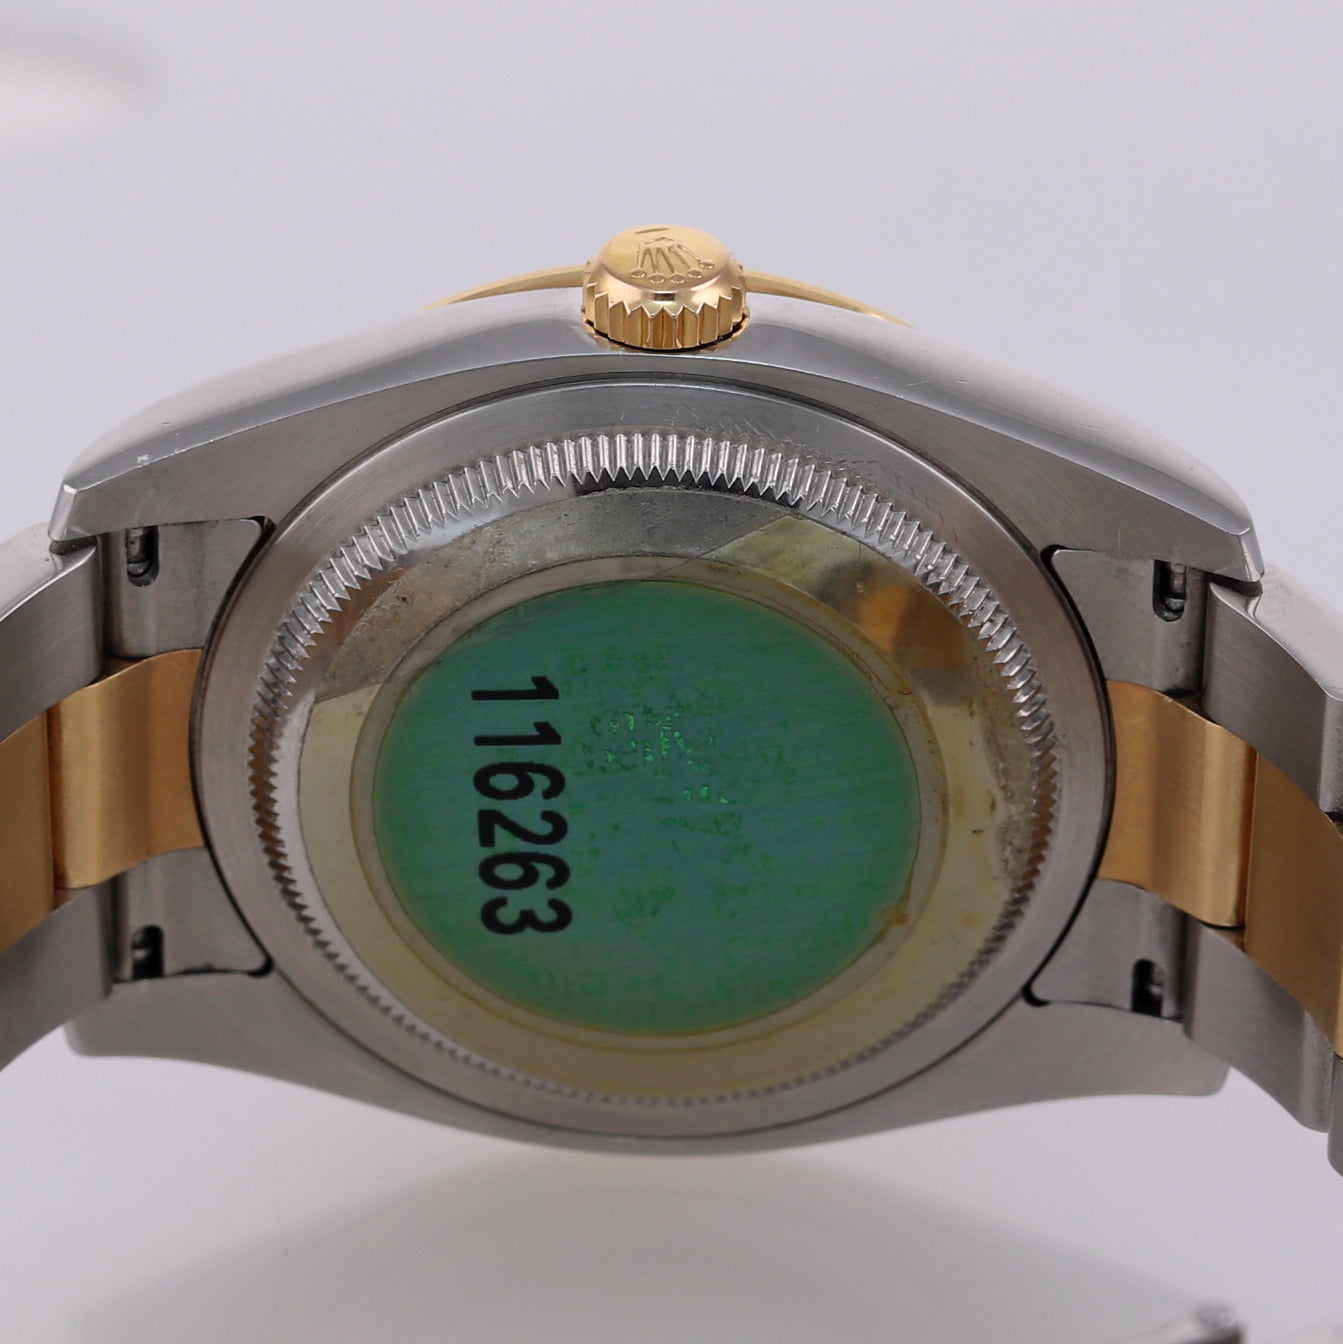 NOS Rolex DateJust 116263 Turn-O-Graph 36mm Thunderbird Champagne Watch Box